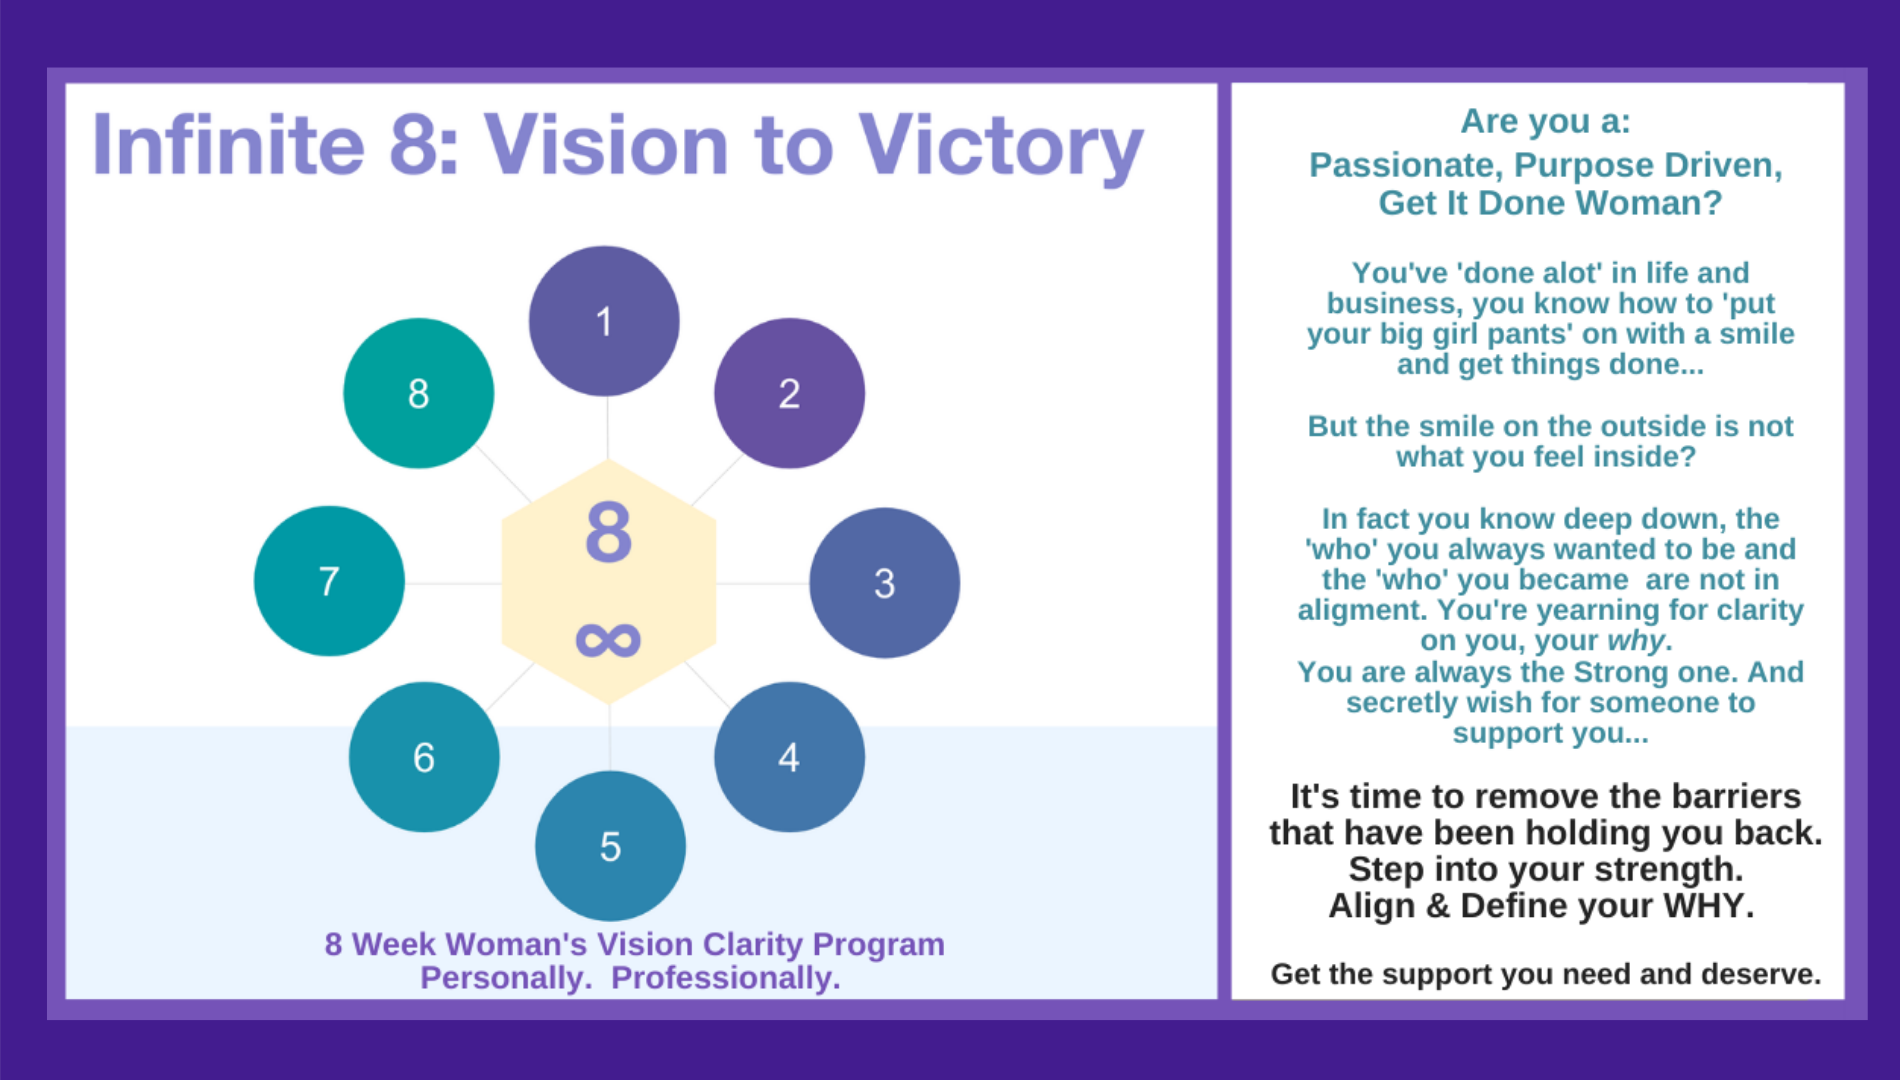 Infinite 8 Vision to Victory: Women's Vision Clarity Leadership Program